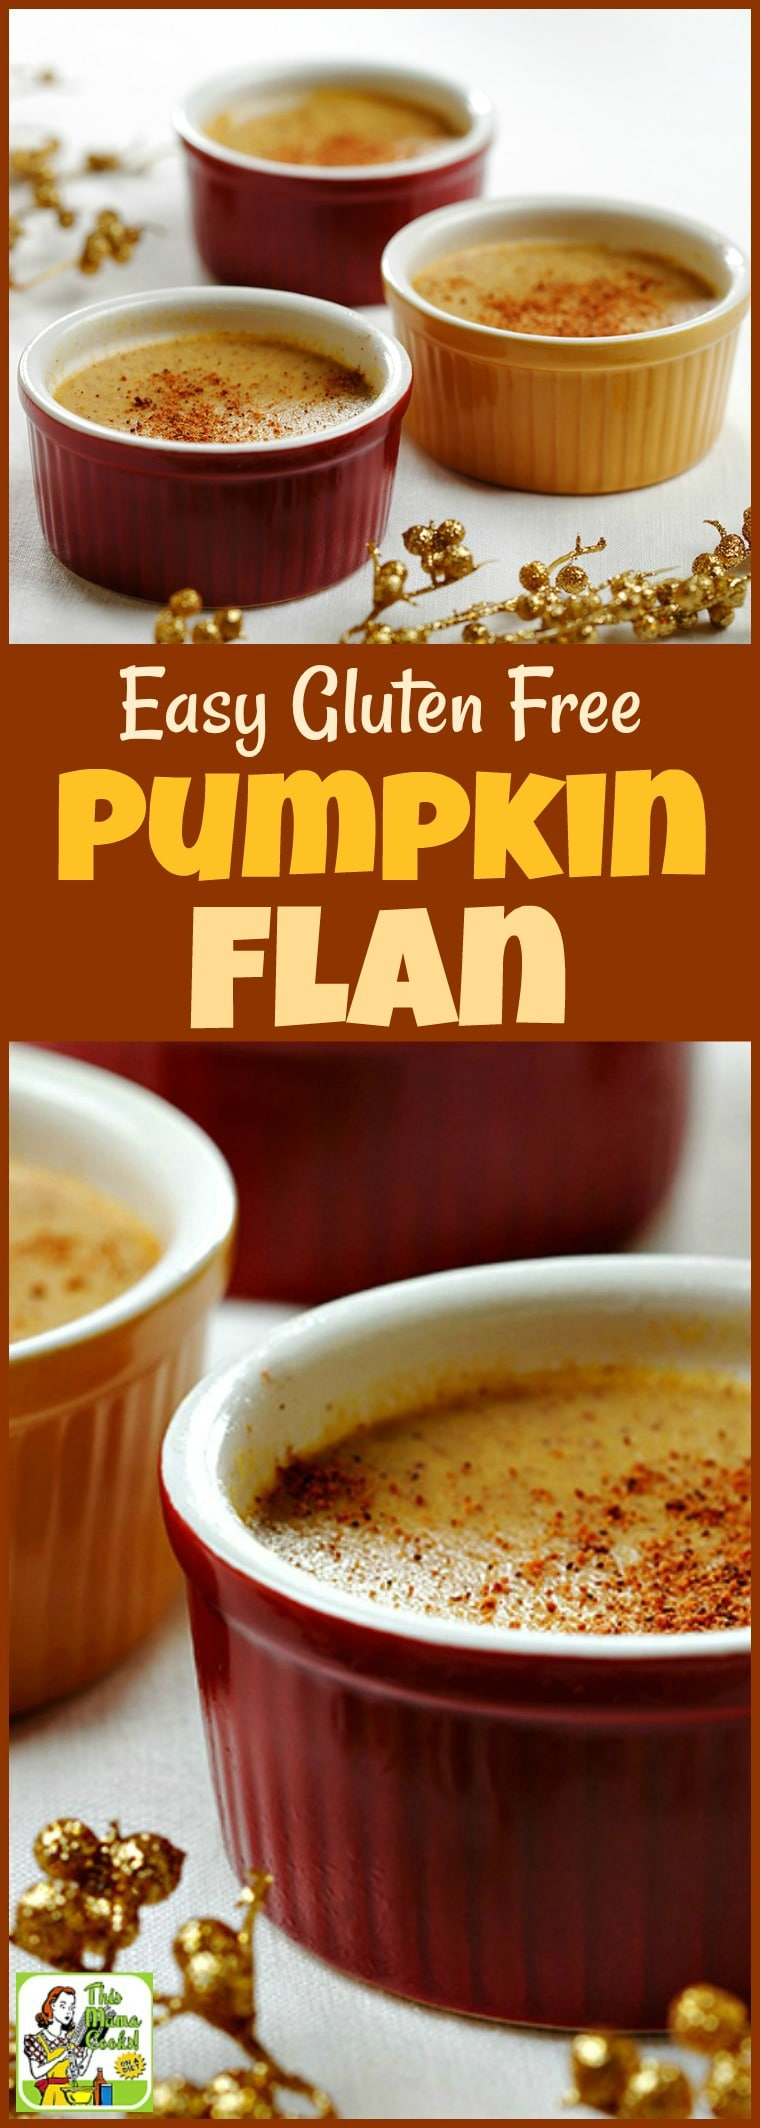 This Easy Gluten Free Pumpkin Flan can be made dairy free. Click to try this easy pumpkin dessert recipe for Thanksgiving, Halloween or the Fall. #recipe #easy #recipeoftheday #healthyrecipes #glutenfree #easyrecipes #snack #snacks #dessert #dessertrecipes #pumpkindessert #pumpkinrecipe #pumpkin #pumpkinspice #halloween #thanksgiving #flan #dairyfree